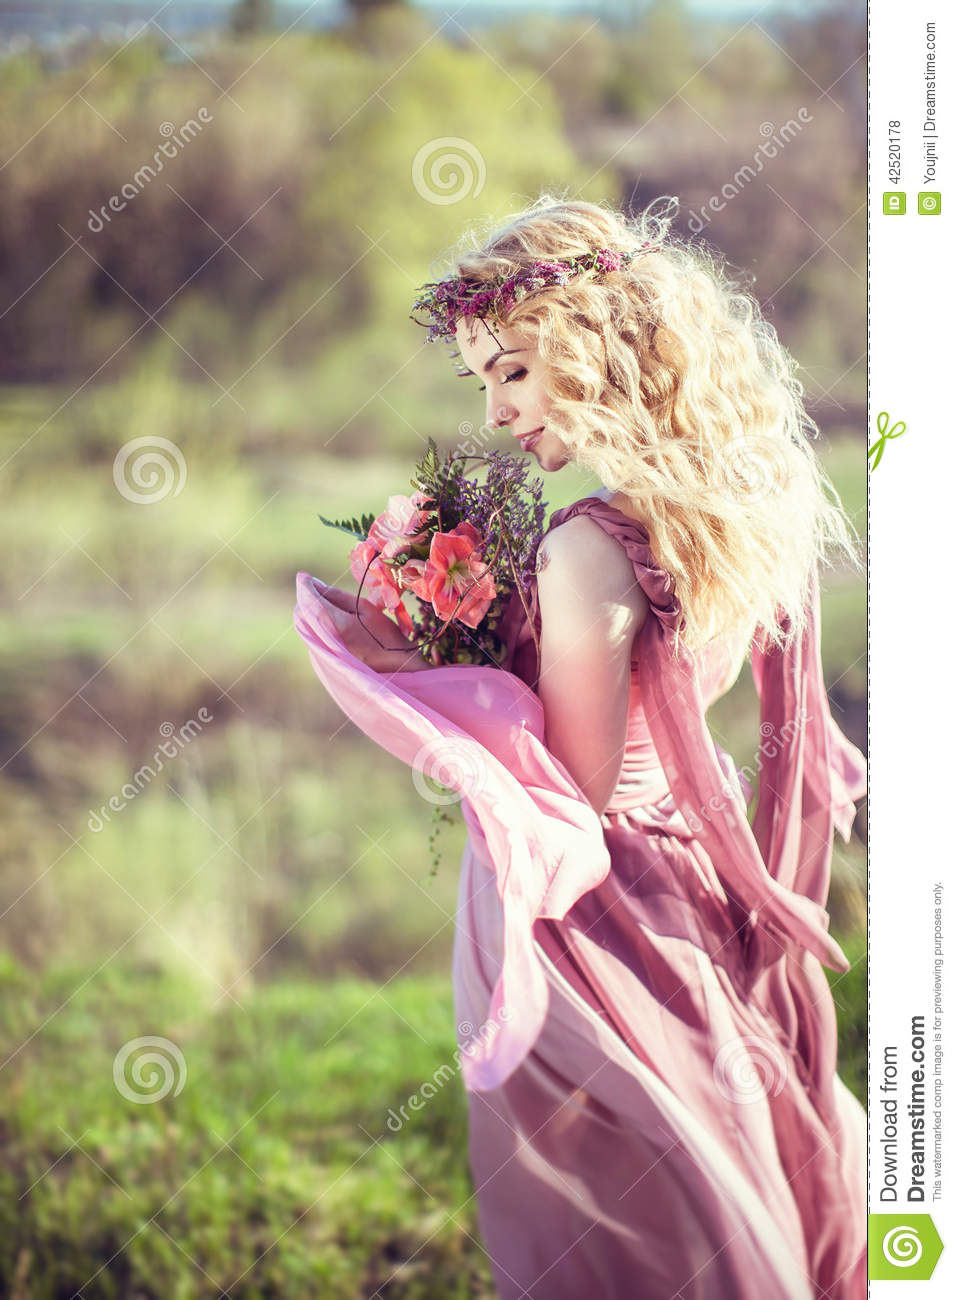 Portrait of a beautiful blonde girl in a pink dress